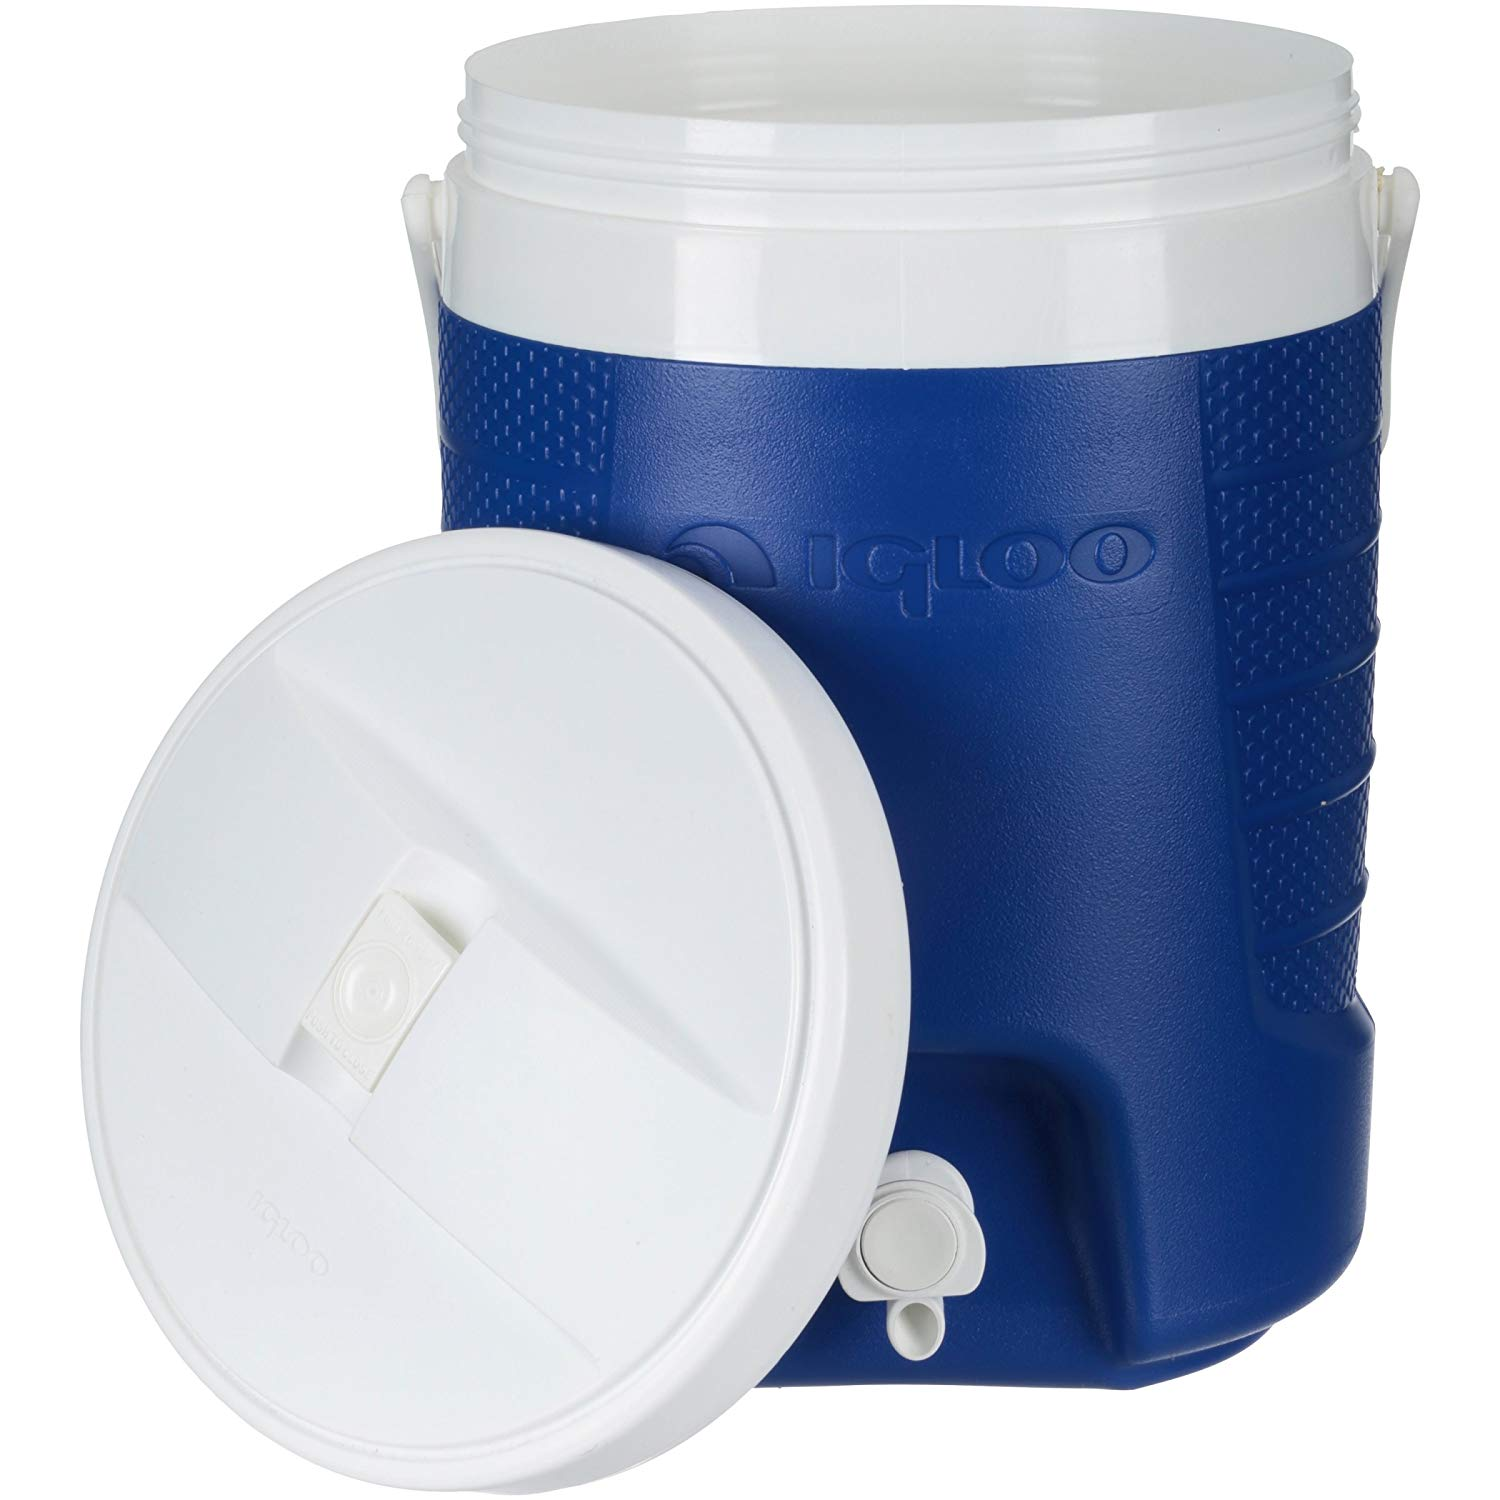 Ice - Cooler 2-gal Sports Beverage, Majestic Blue. This Ice Box Is The Best Way To Keep Food, Drinks & Beer Cool For Outdoor Party, Camping, Travel, Picnic, Fishing, Bbq, Beach, Sports And Pool.